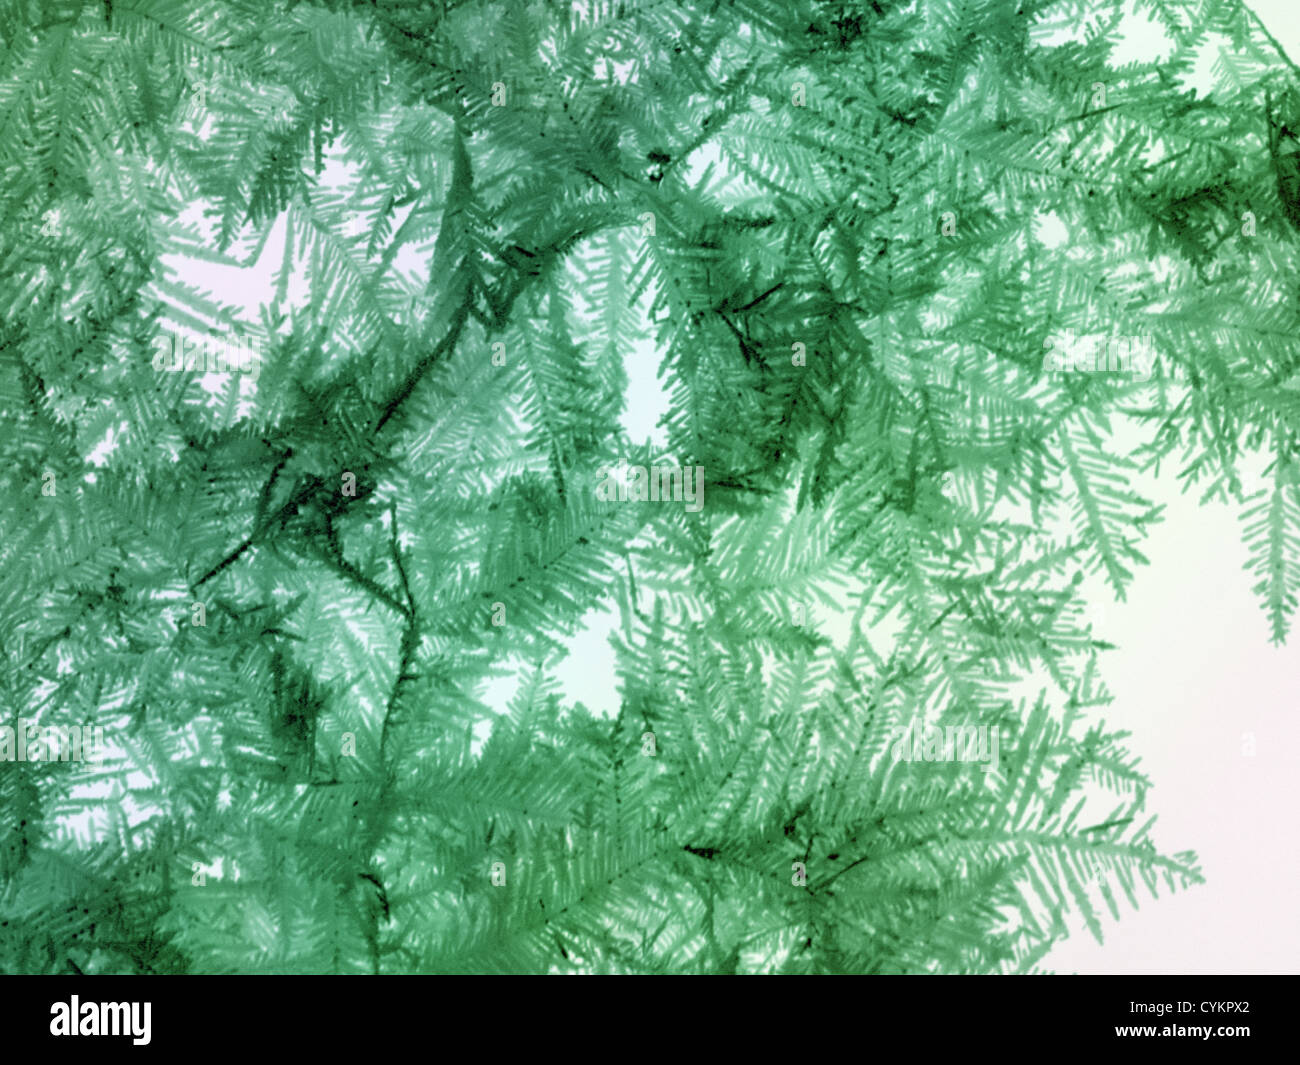 SEM of chemically deposited Silver on metallic substrates Stock Photo